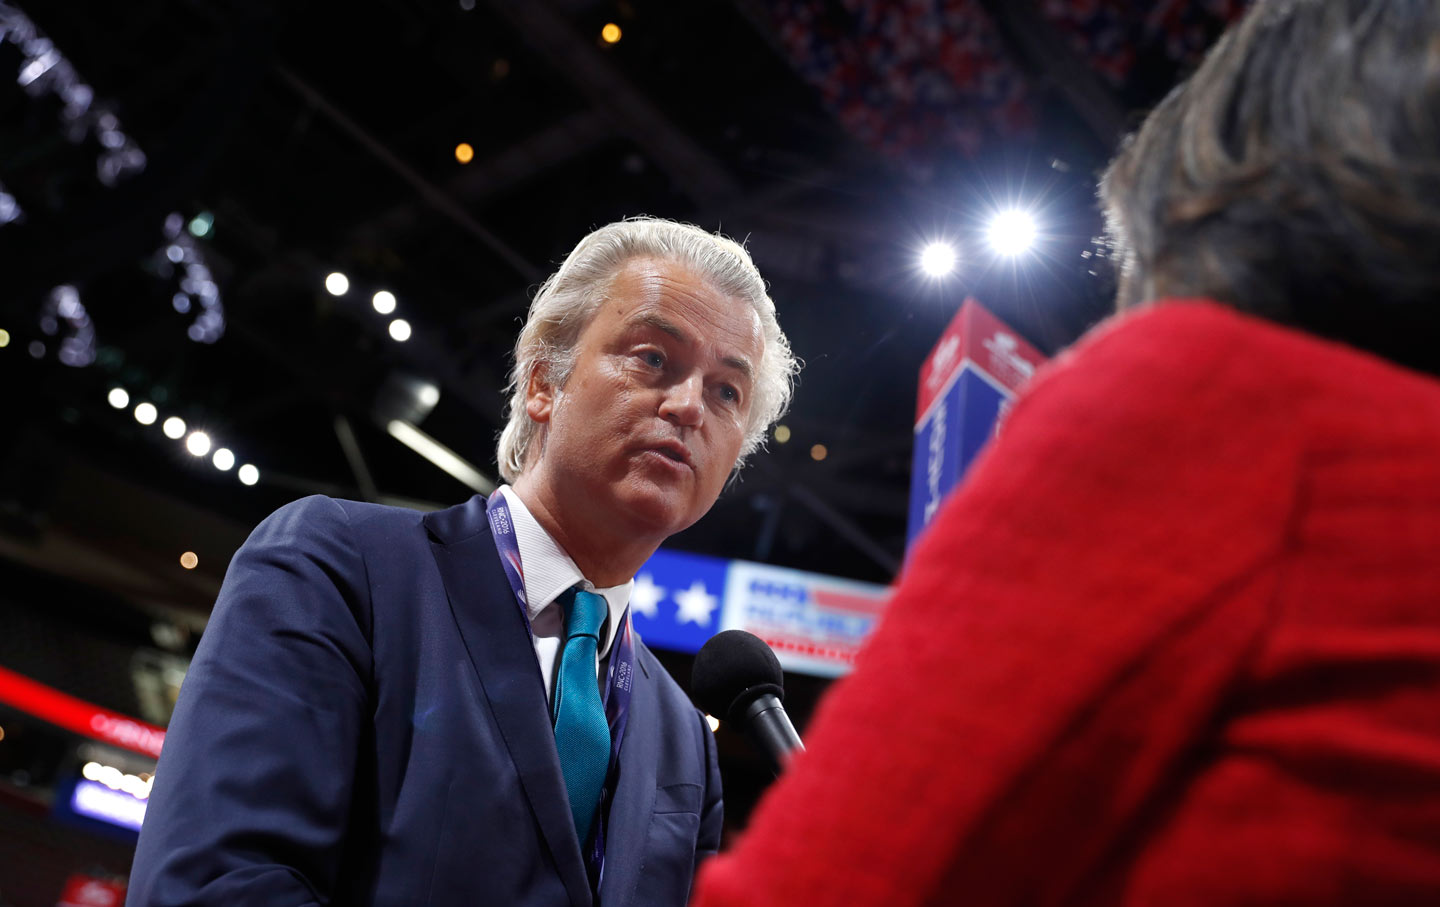 Dutch lawmaker Geert Wilders in Cleveland